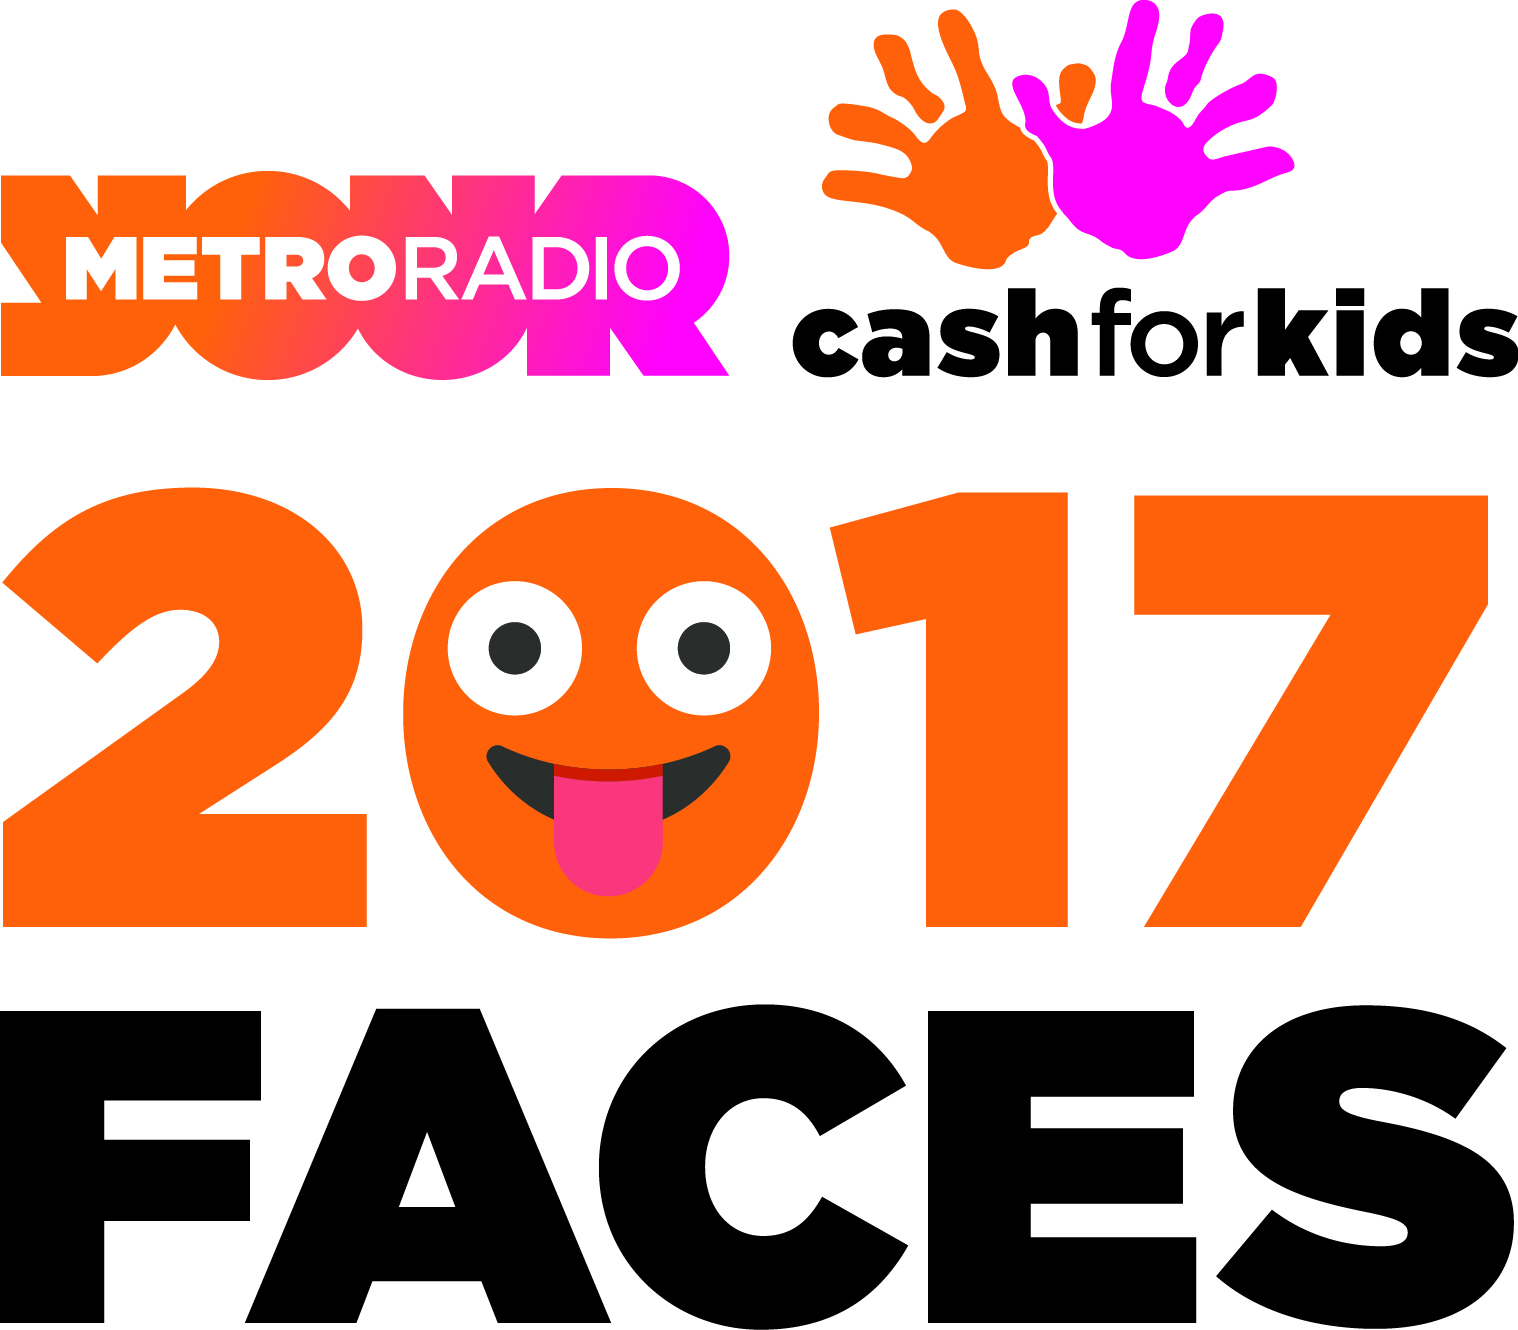 2017Faces MetroRadio